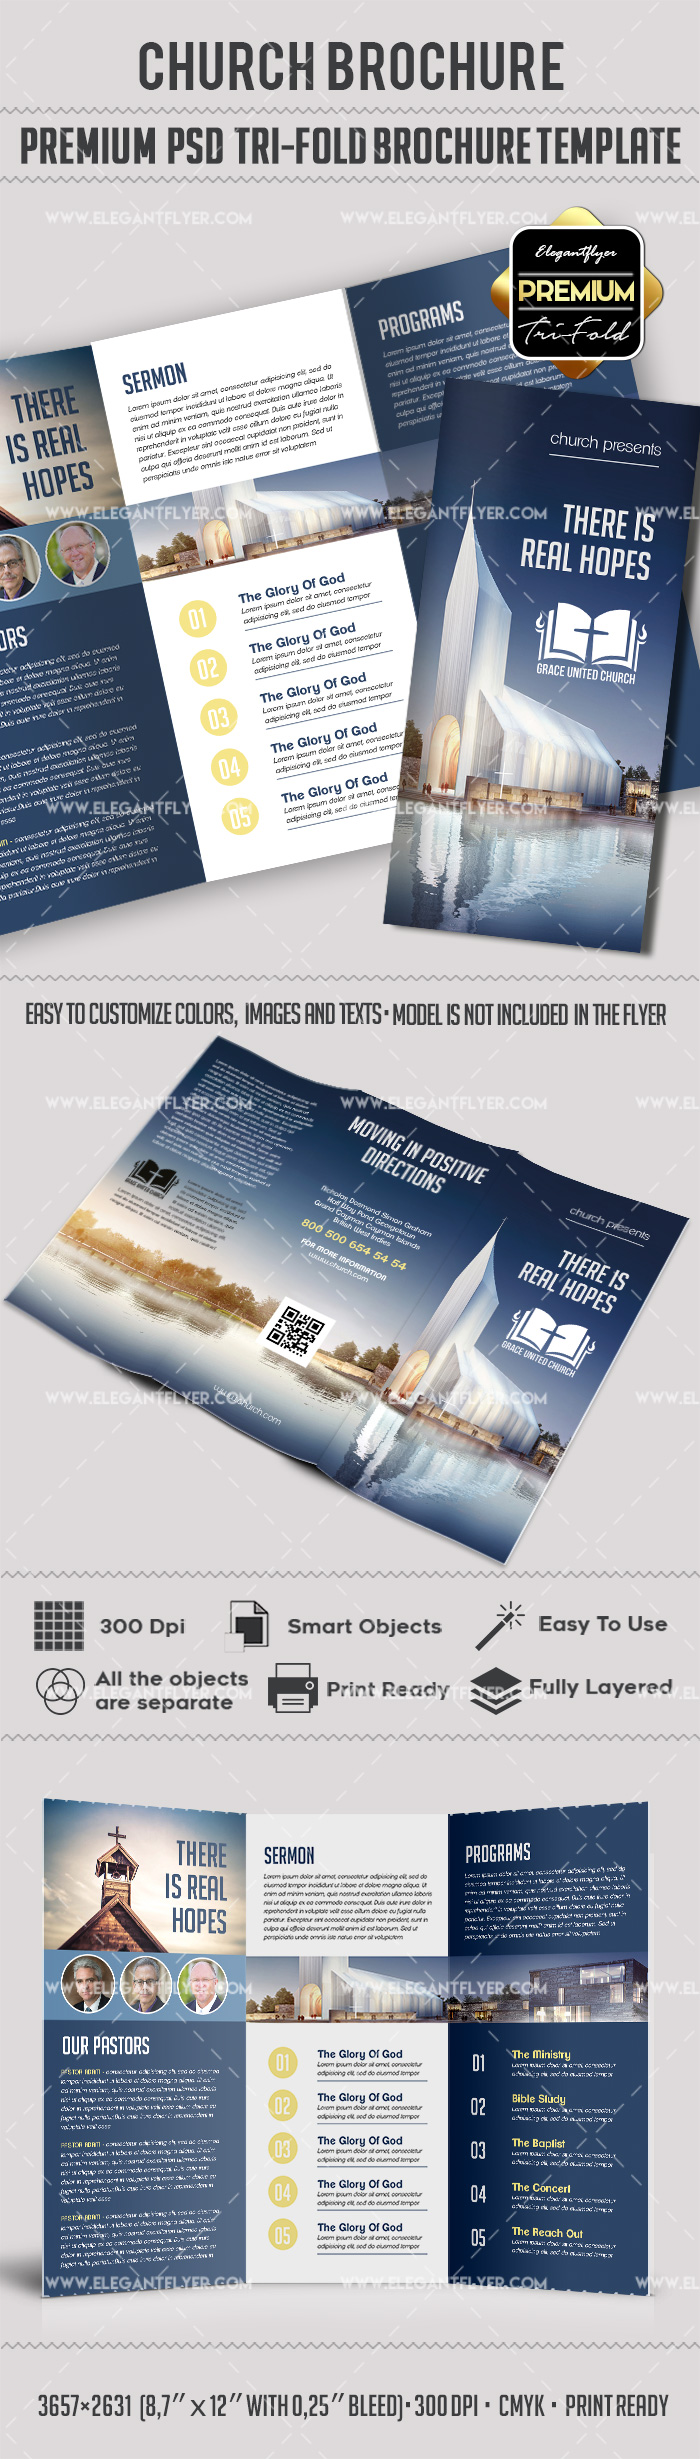 Church – Premium Tri-Fold PSD Brochure Template